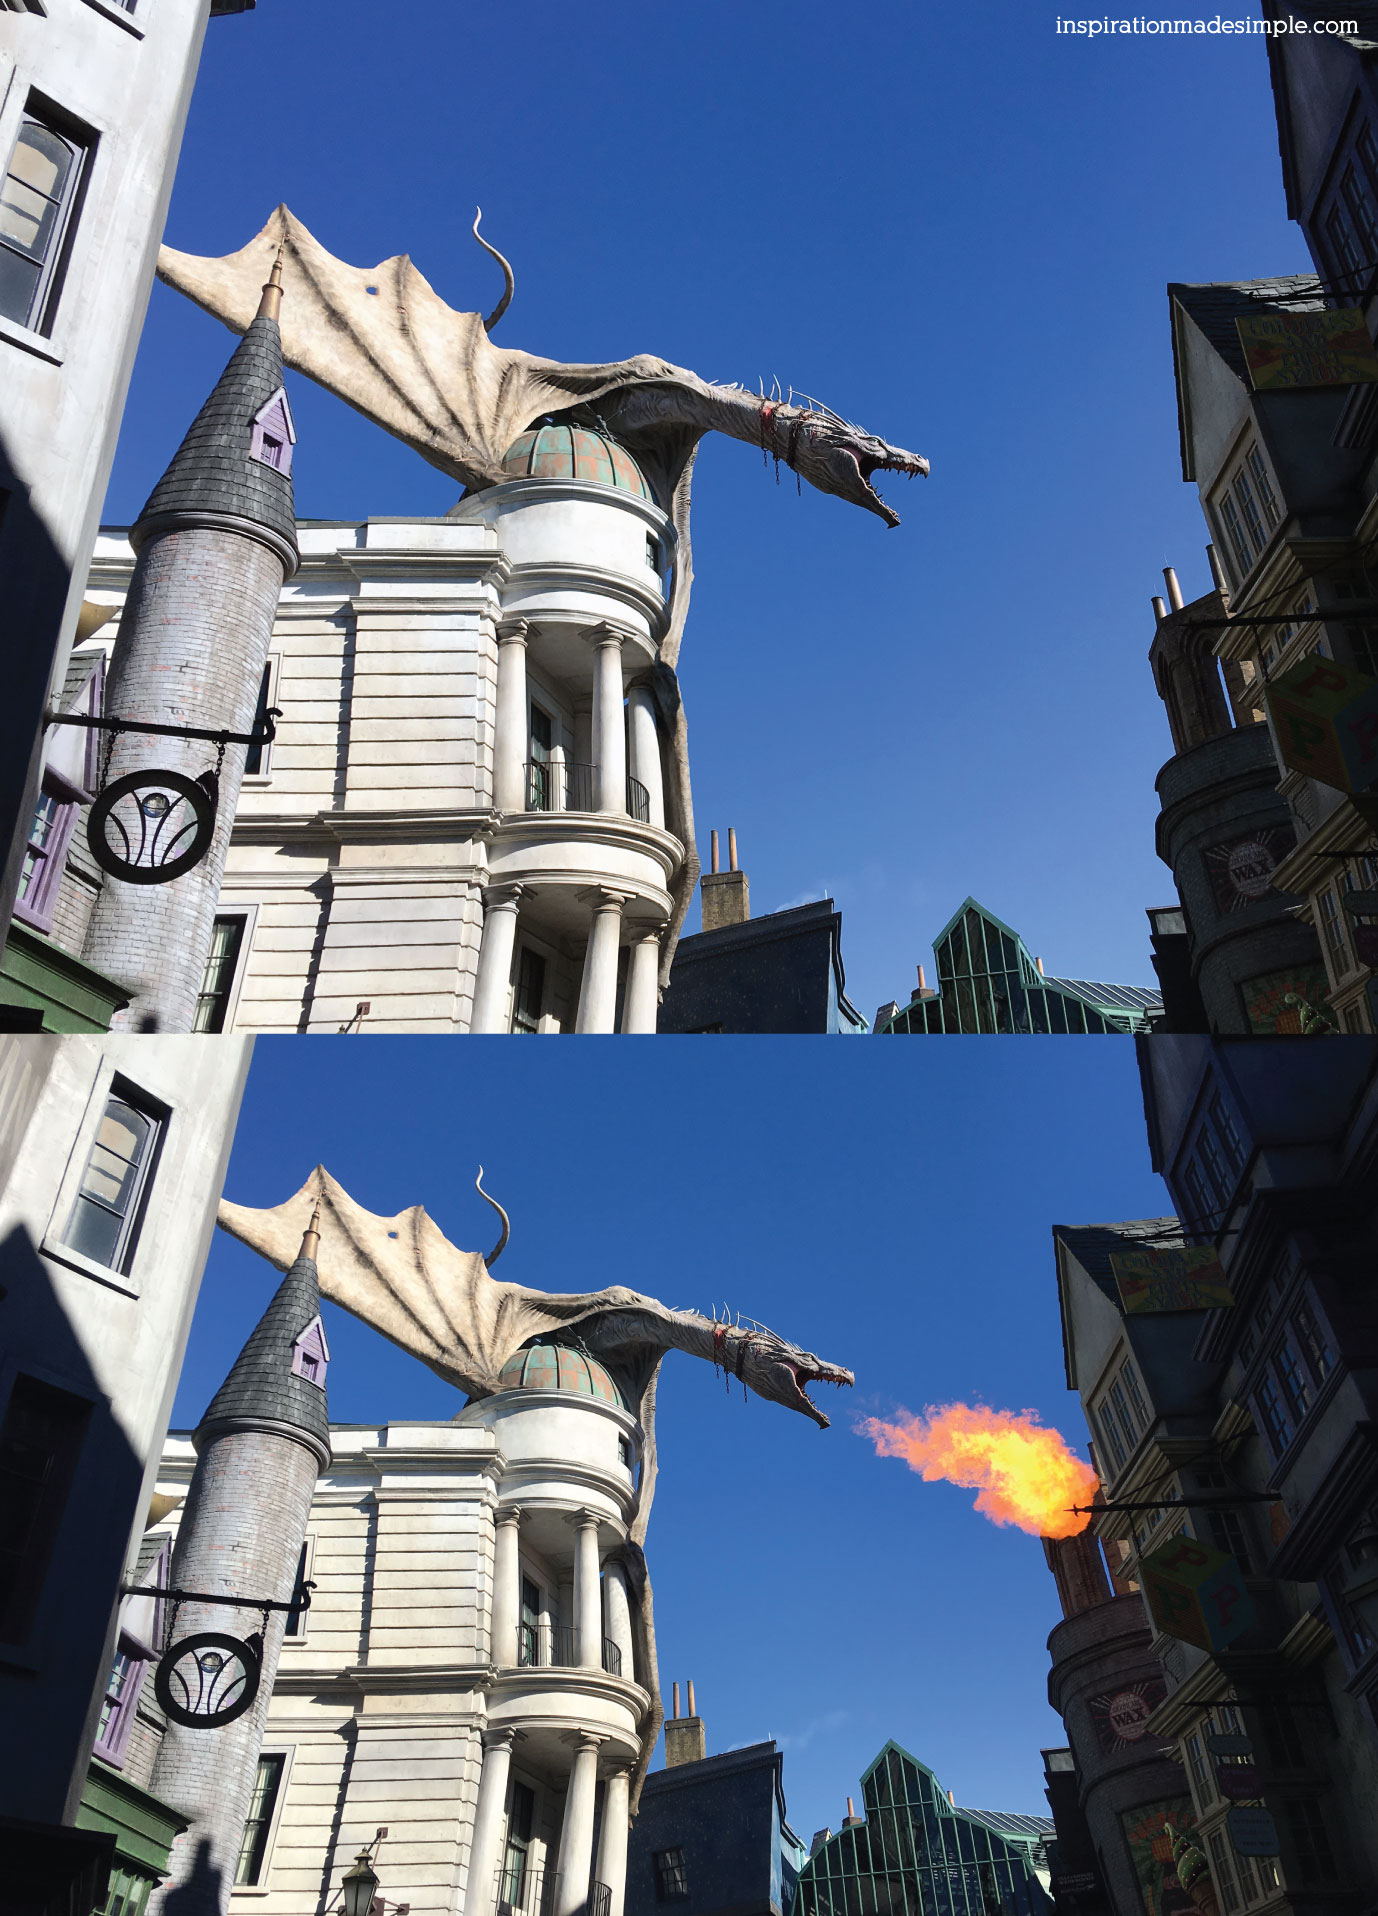 Escape from Gringotts, Diagon Alley, Wizarding World of Harry Potter, Universal Studios